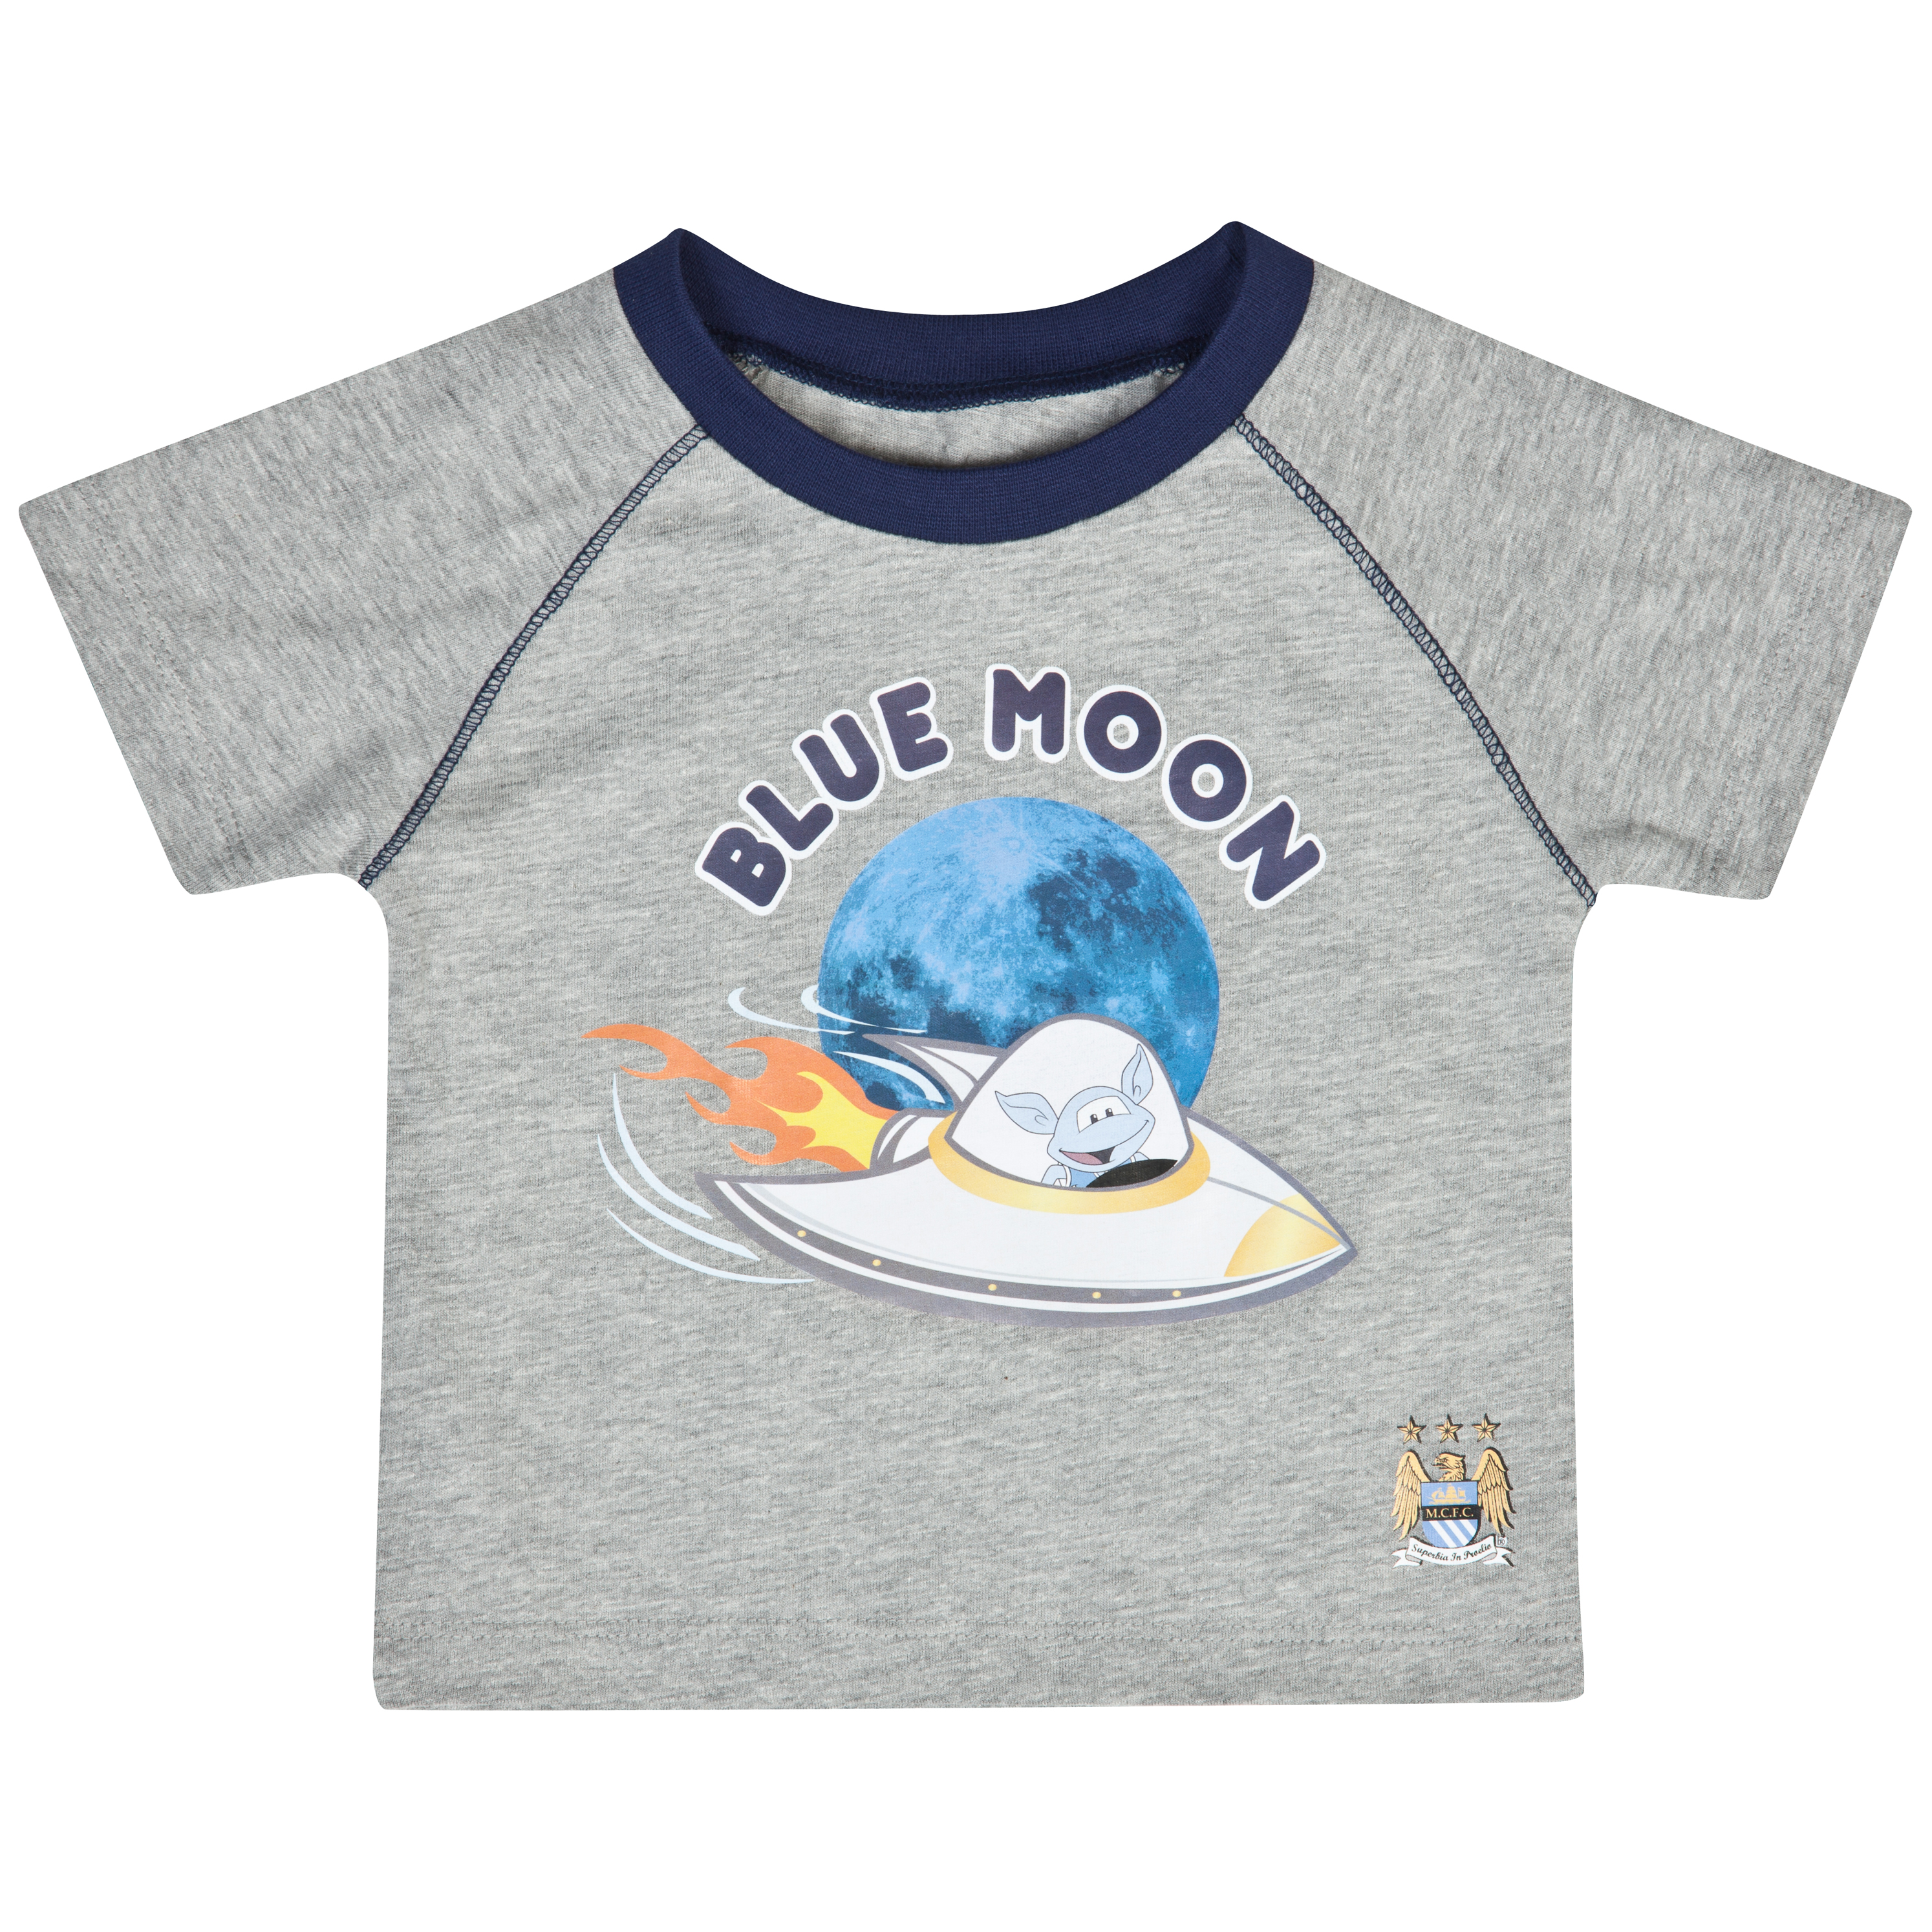 Manchester City Blue Moon T-Shirt - Grey - Baby